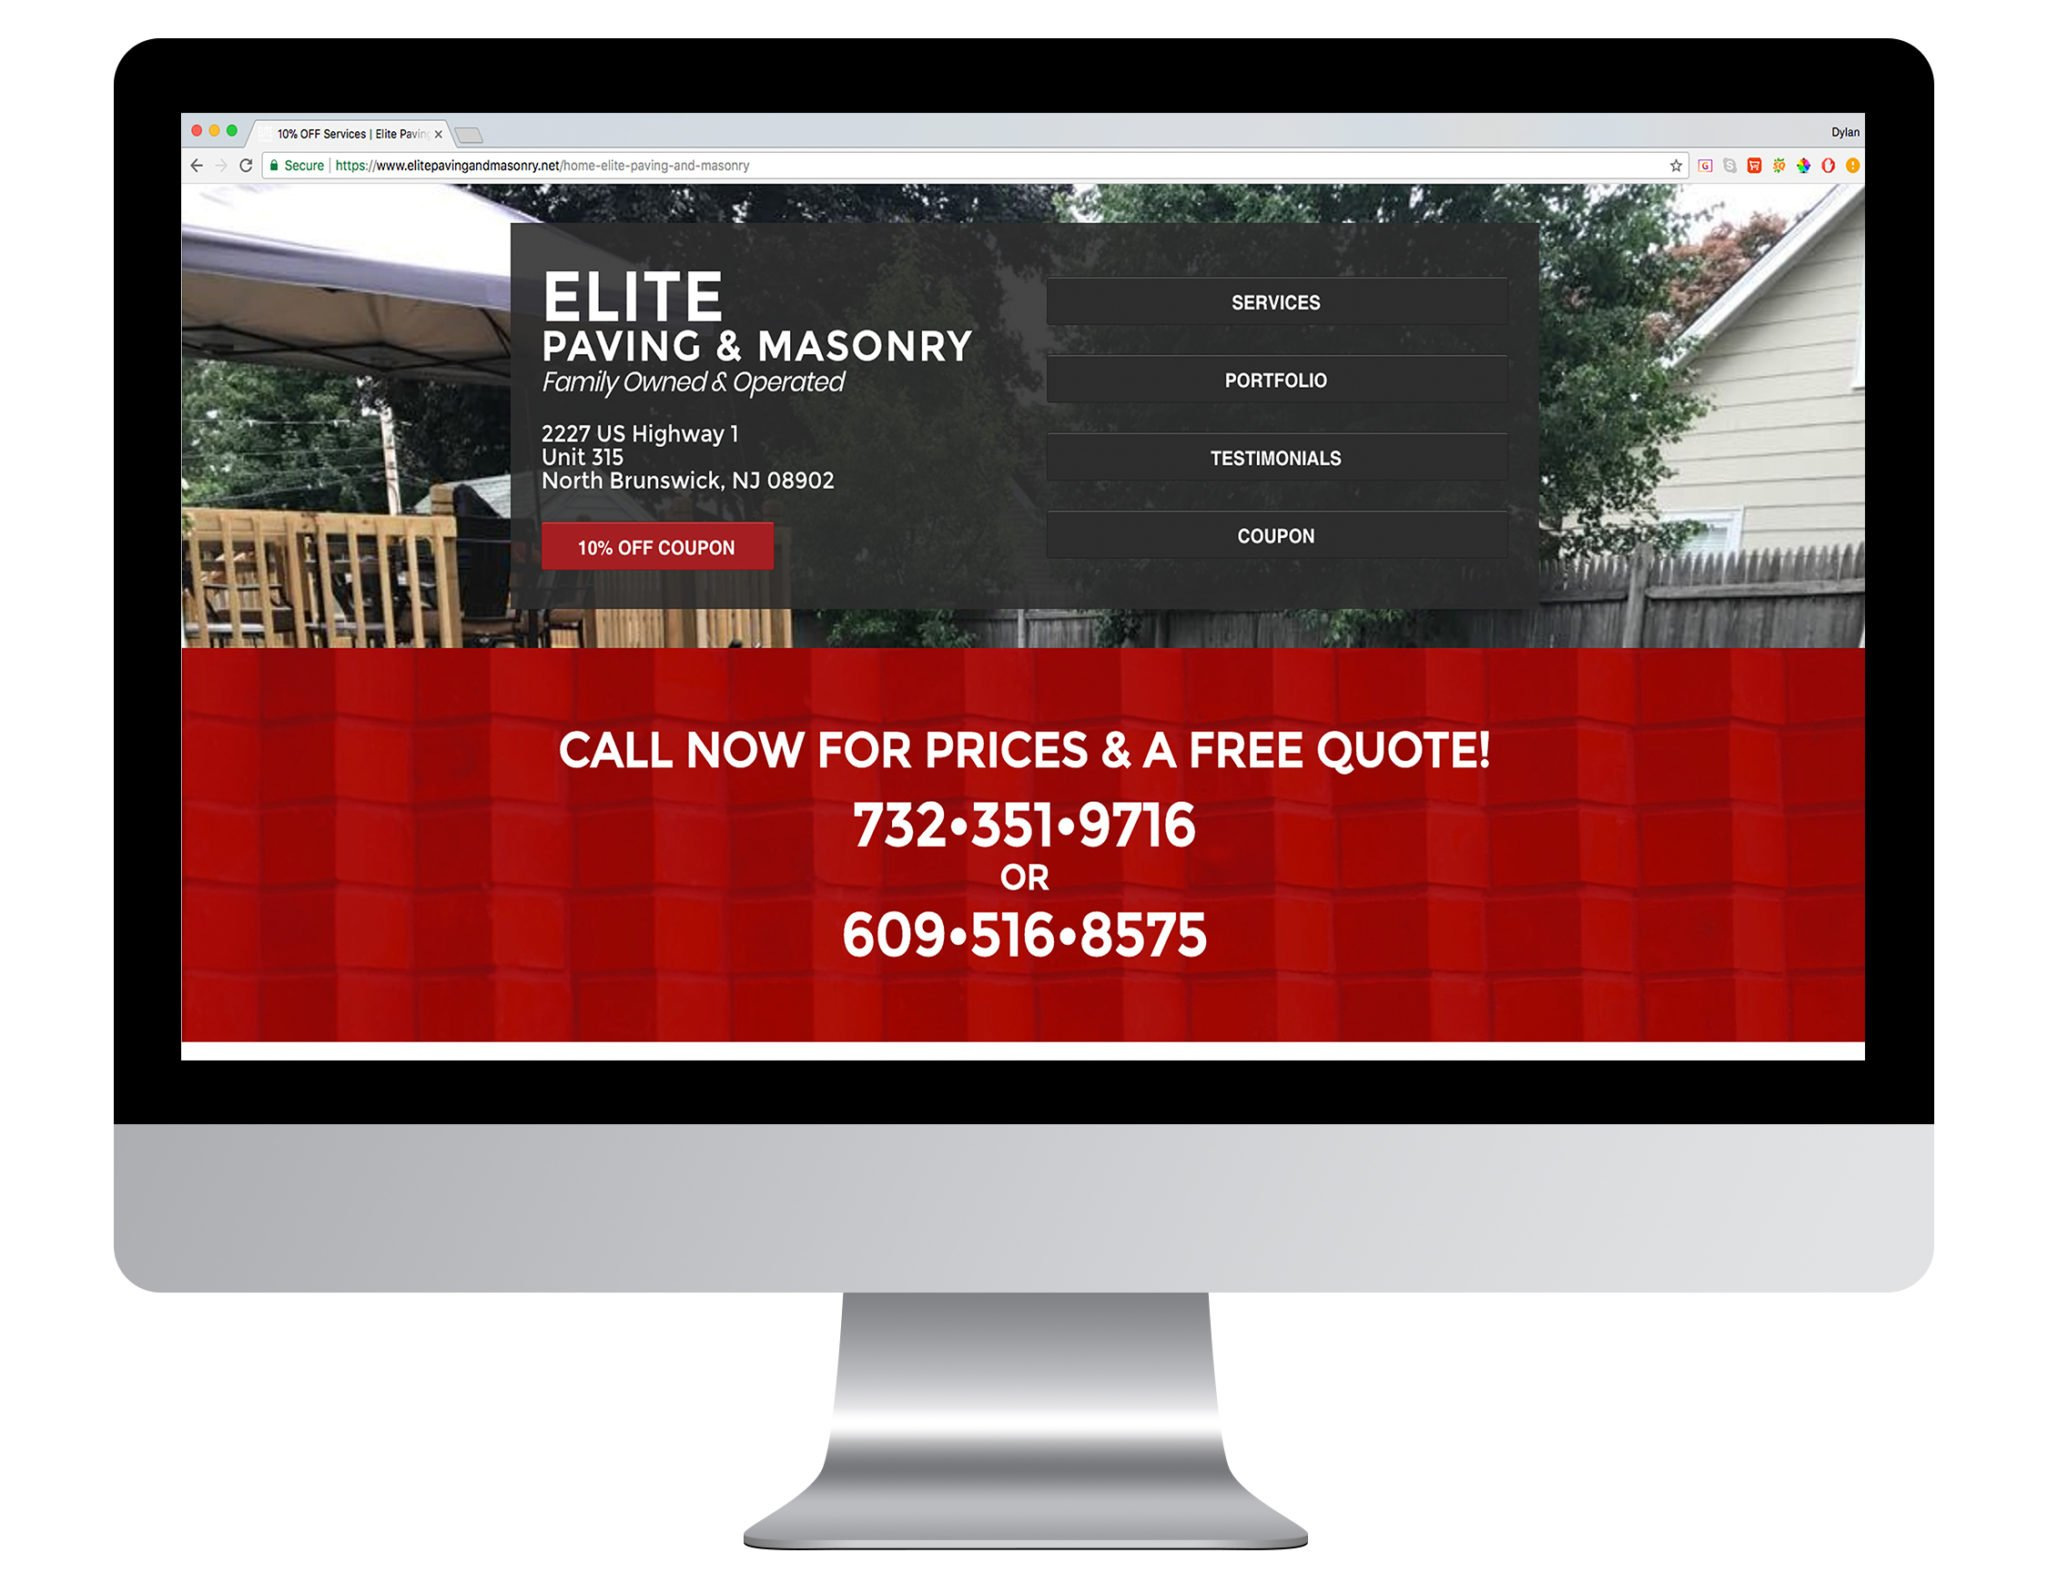 Web Design Portfolio Sample - Elite Paving and Masonry